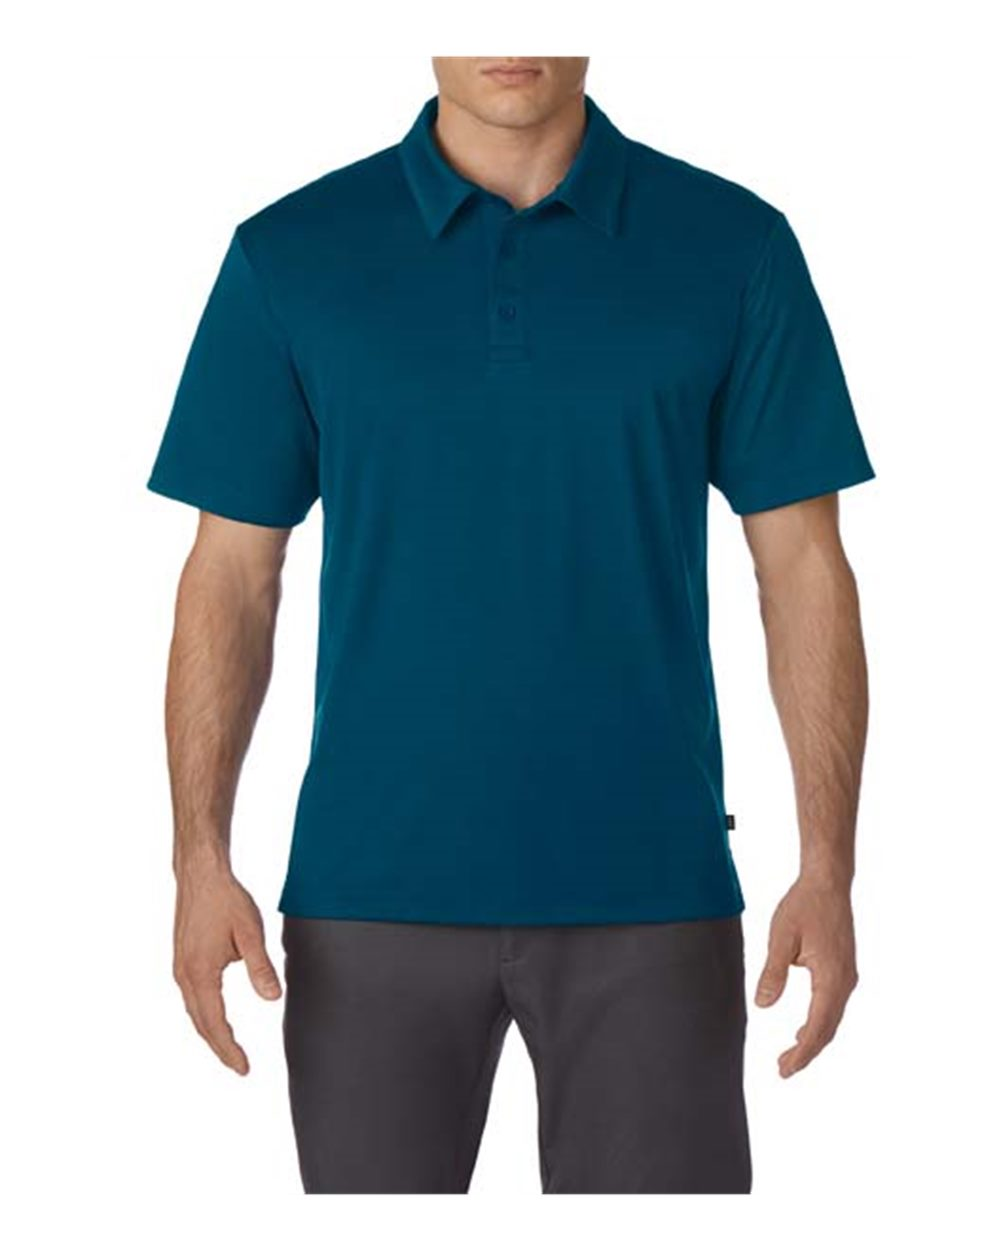 Prim + Preux 2004 - Energy Embossed Polo